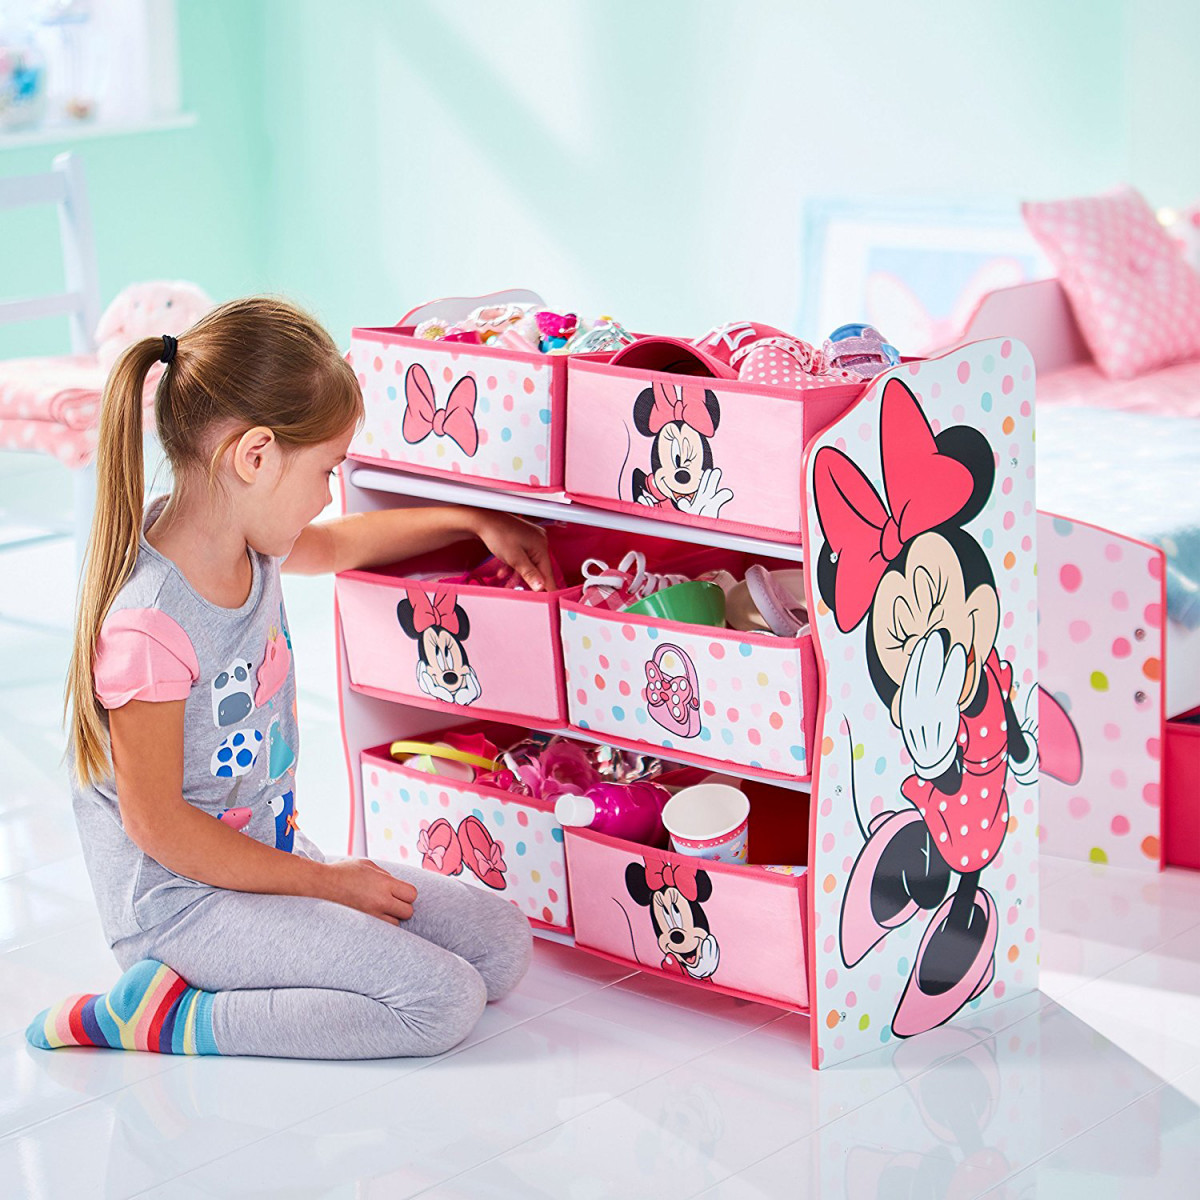 meuble rangement rose 6 casiers motif Minnie Mouse de Disney